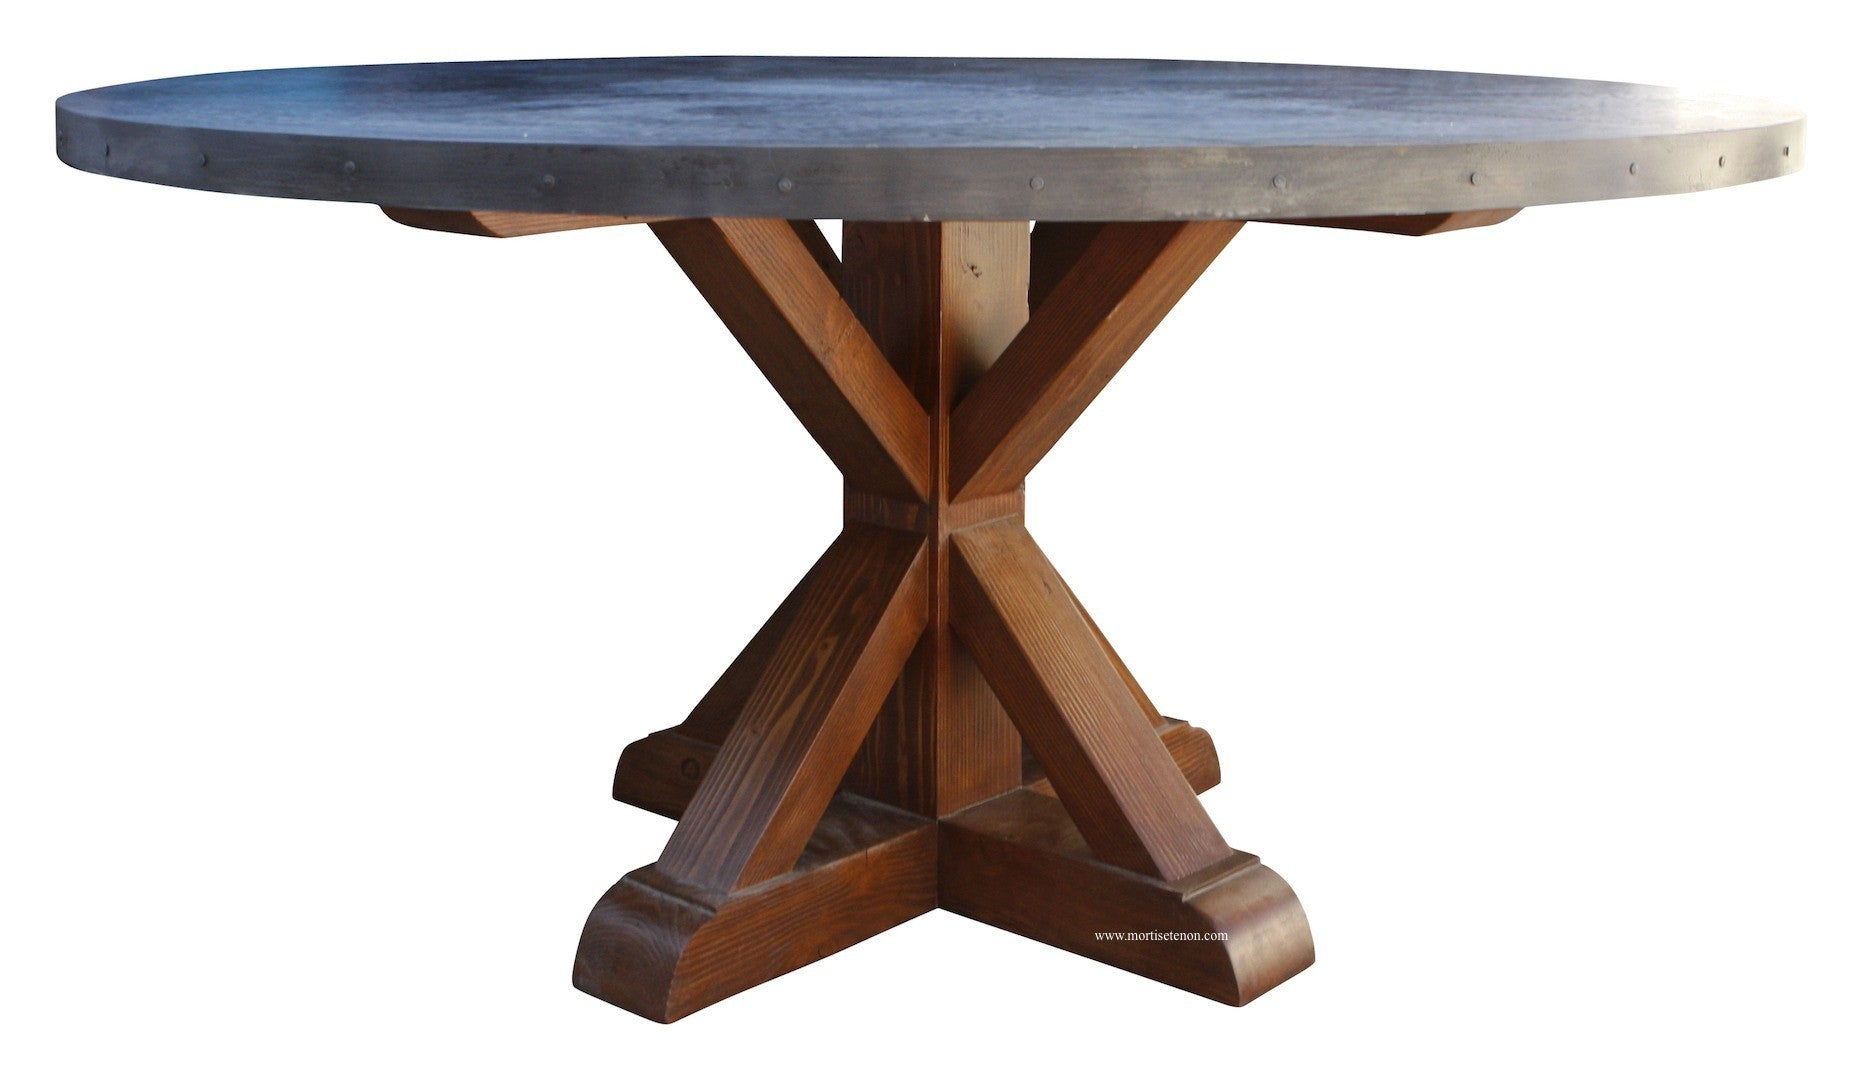 Henrik Hammered Zinc Round Dining Table Mortise Tenon